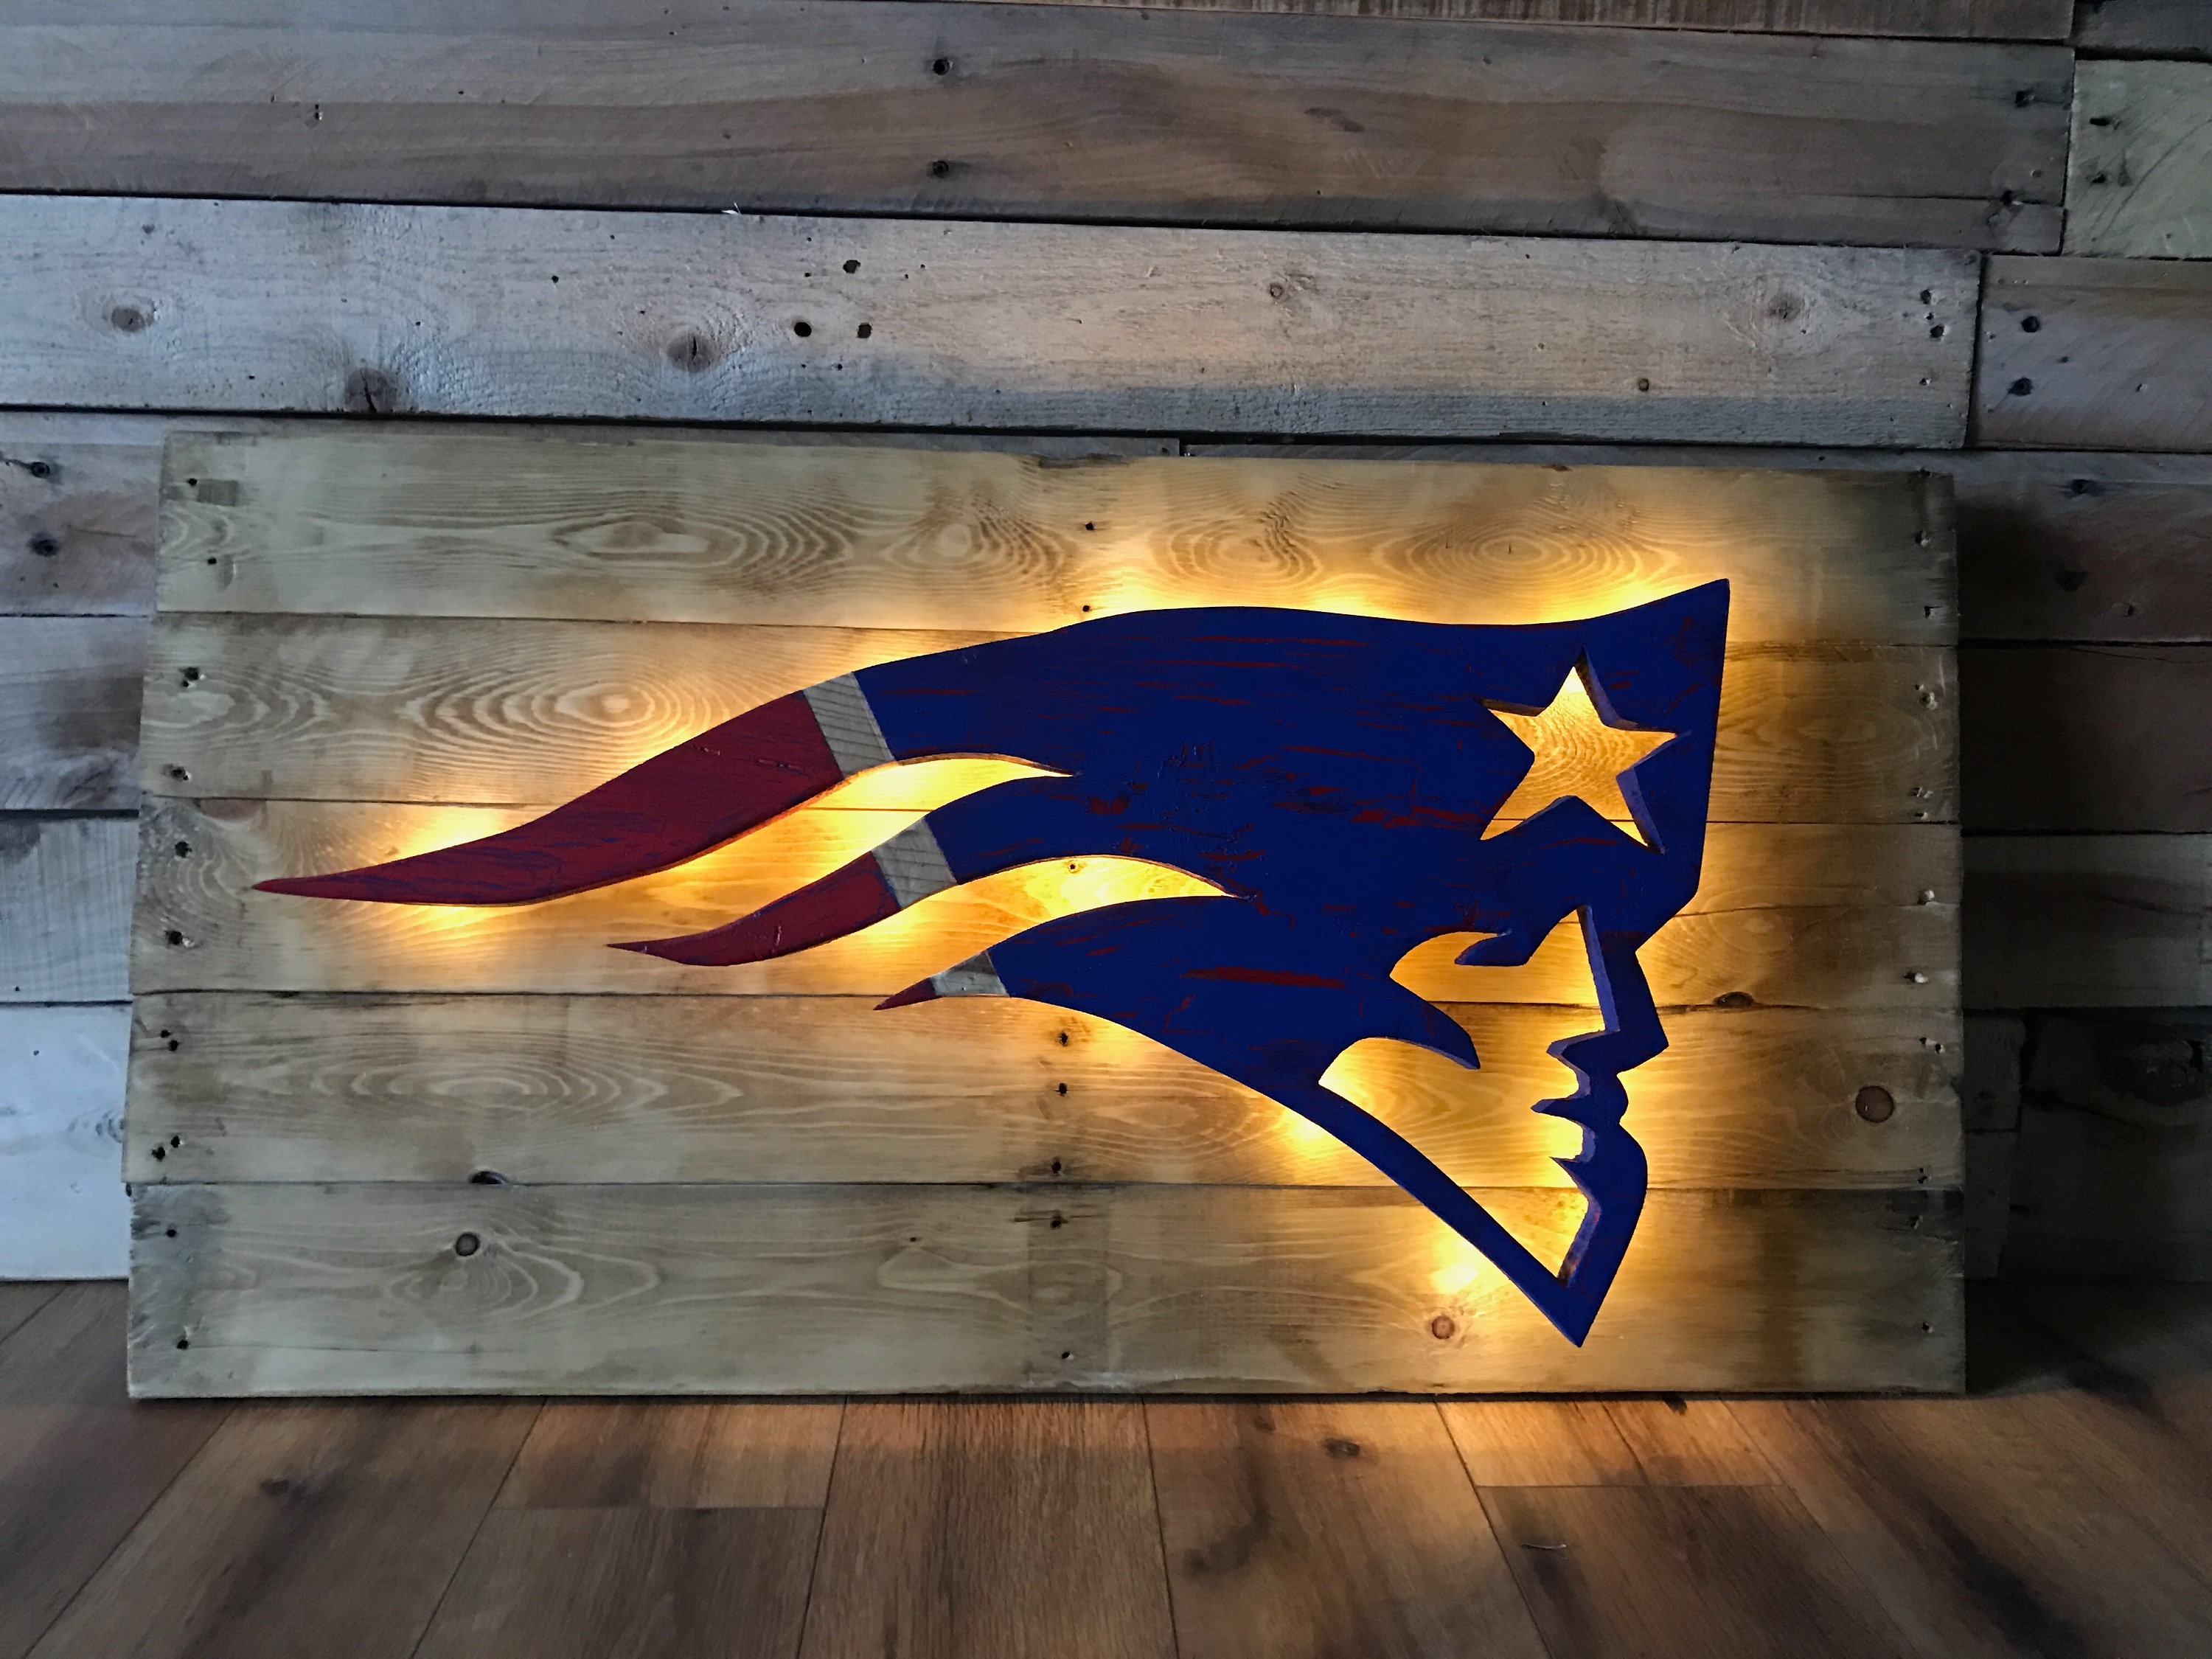 Designsbyfalcone wall decor nfl patriots team logo wall decor amipublicfo Image collections